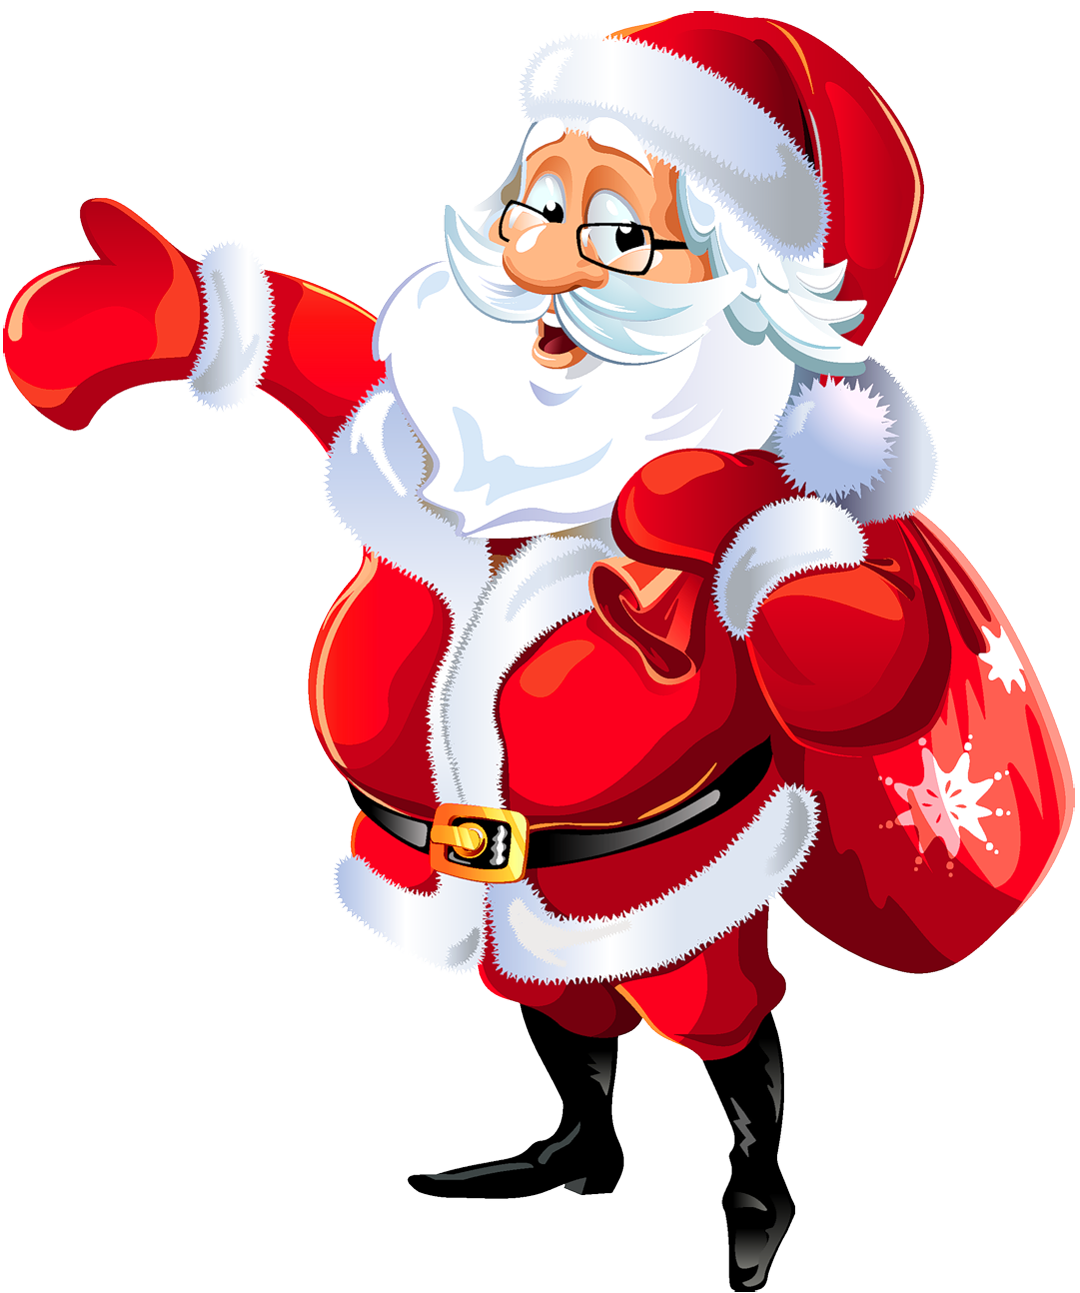 Christmas clipart jesus clipart royalty free download Santa Claus Background Picture For Desktop PC - Happy Birthday Jesus ... clipart royalty free download